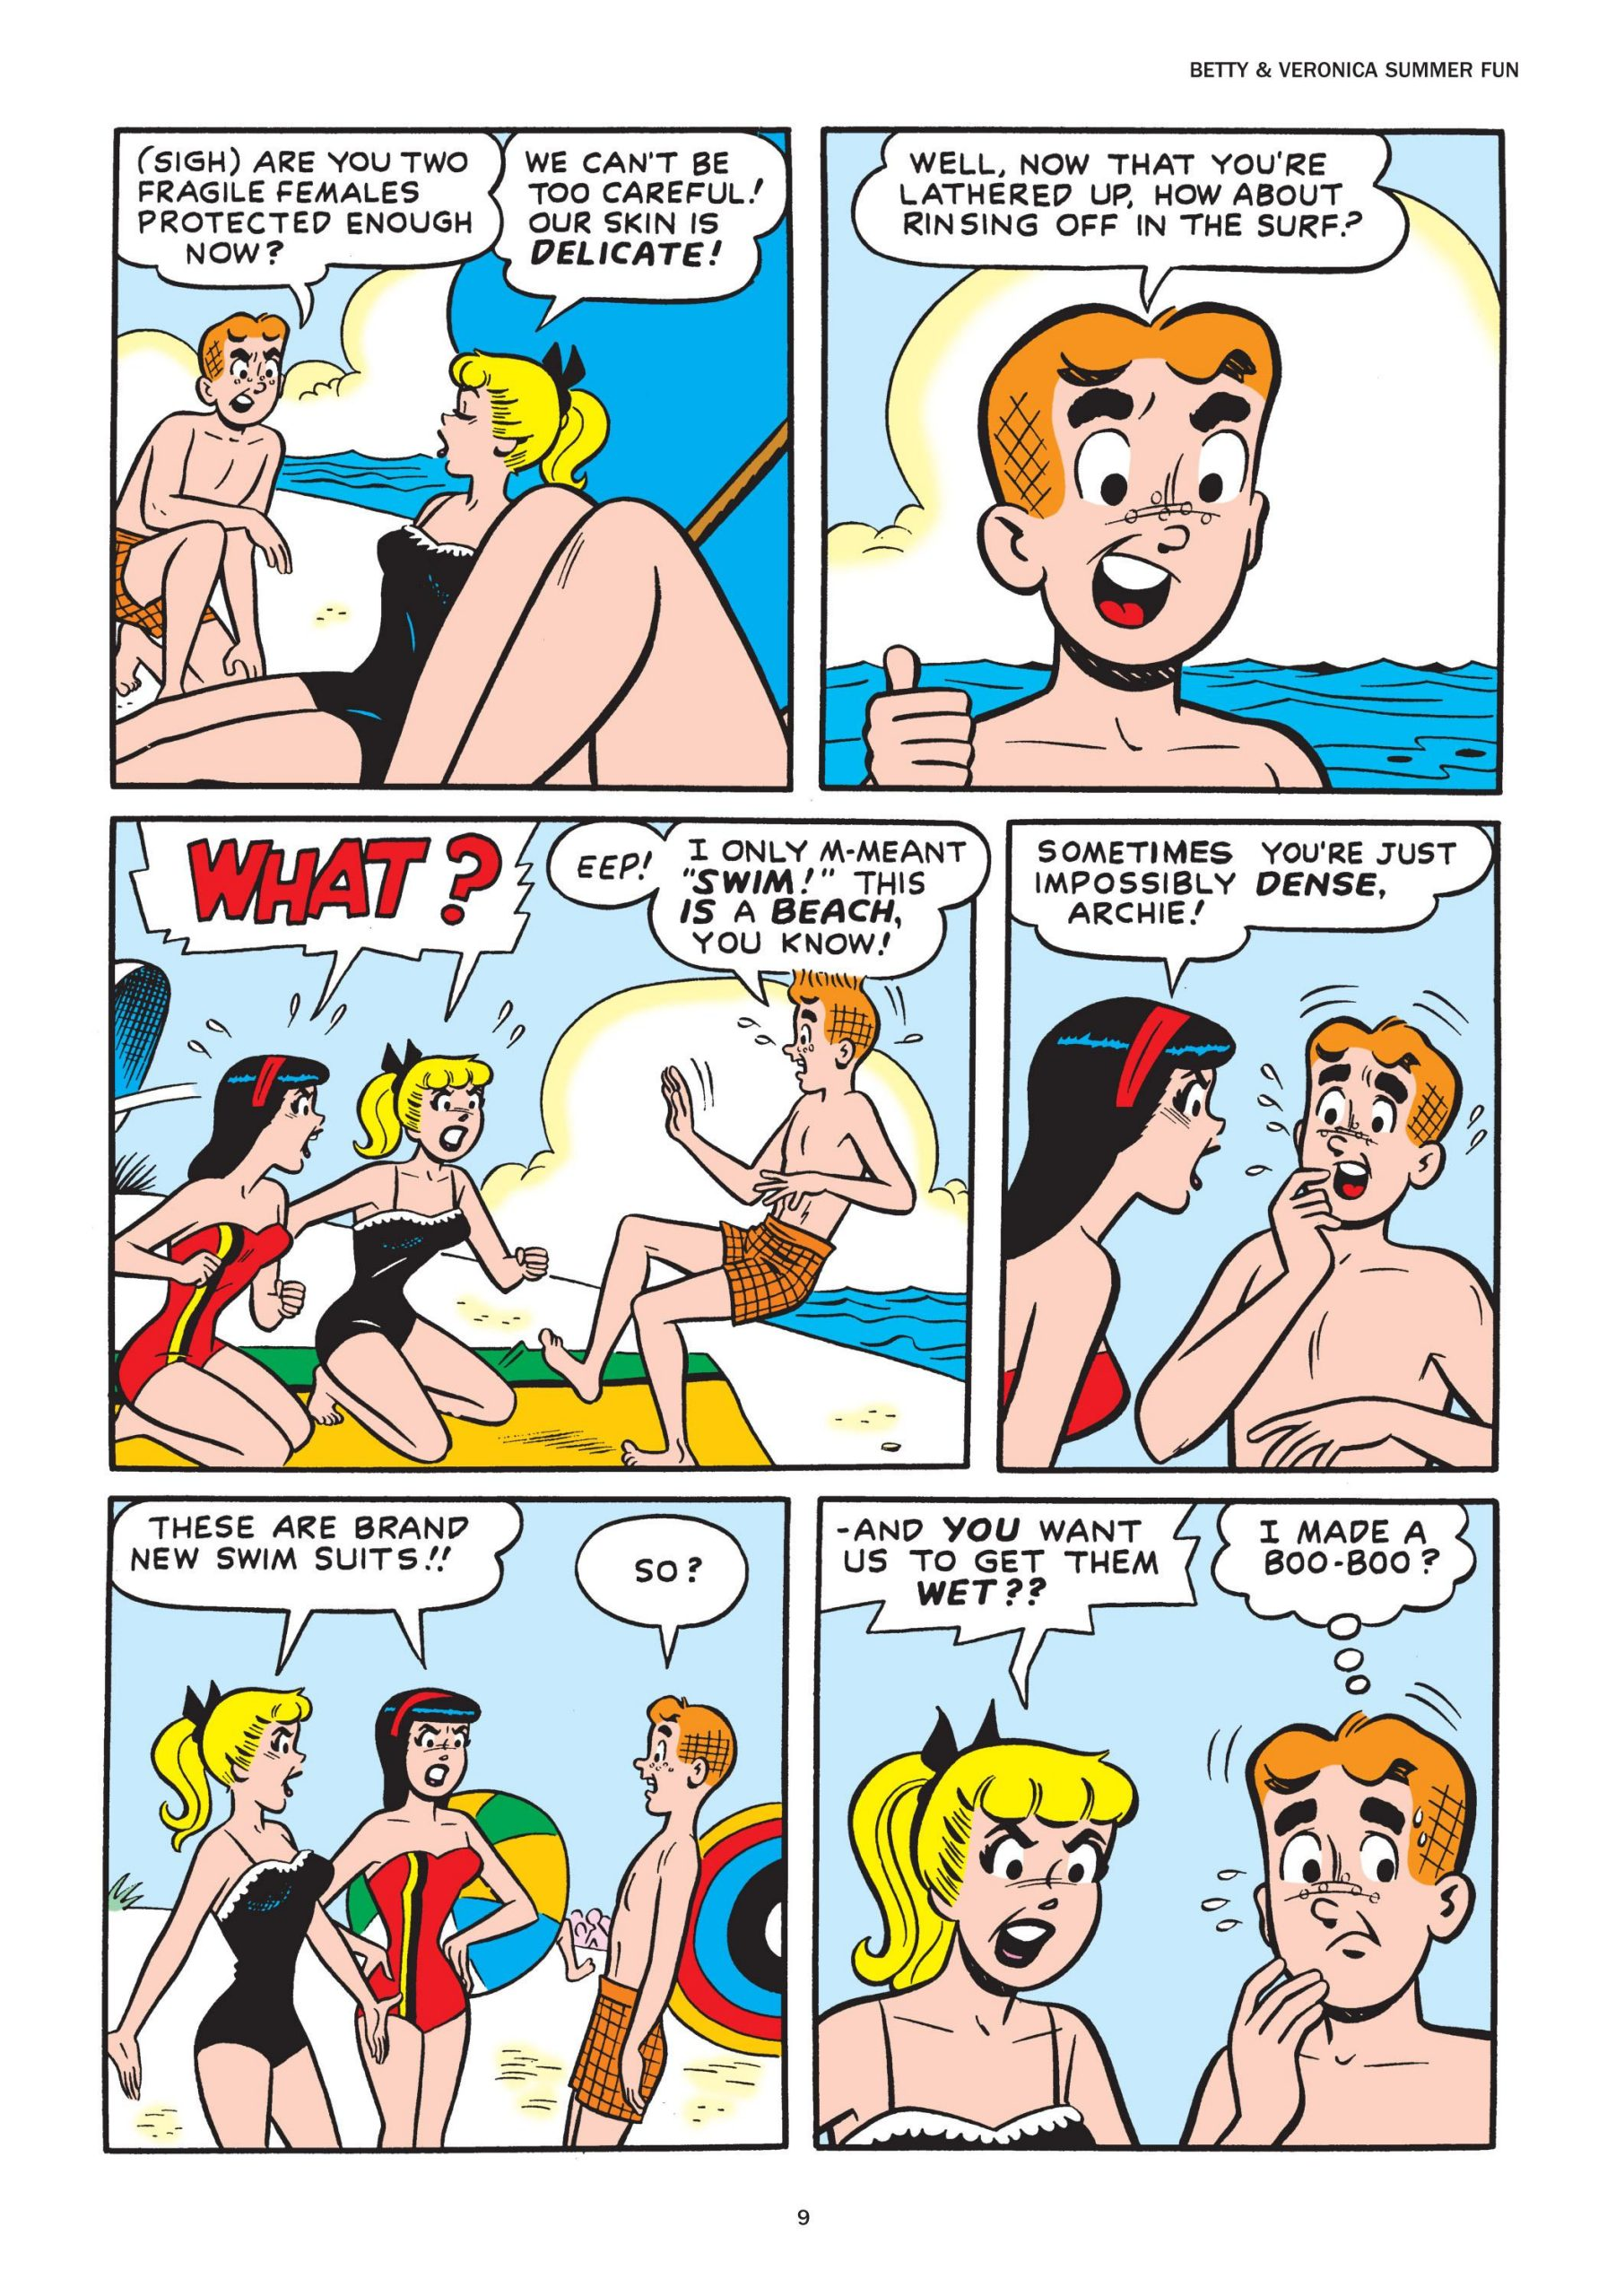 Betty and Veronica Summer Fun review